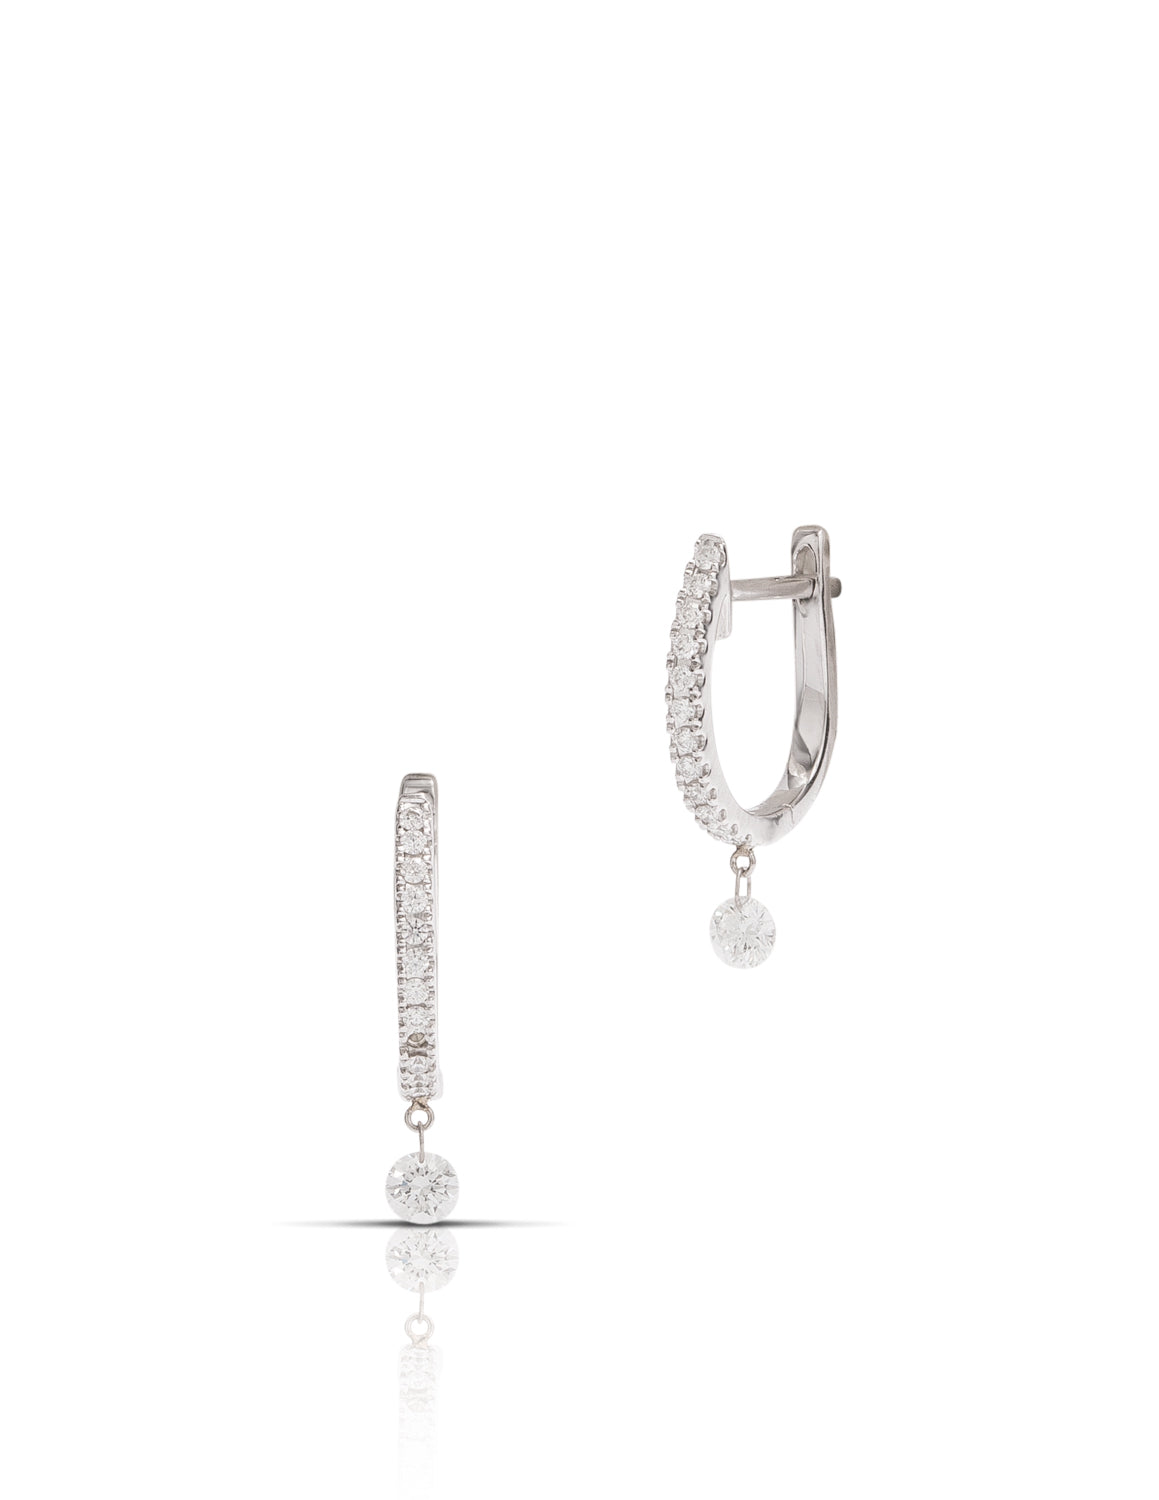 Dancing Diamond Earrings in White Gold - Charles Koll Jewellers